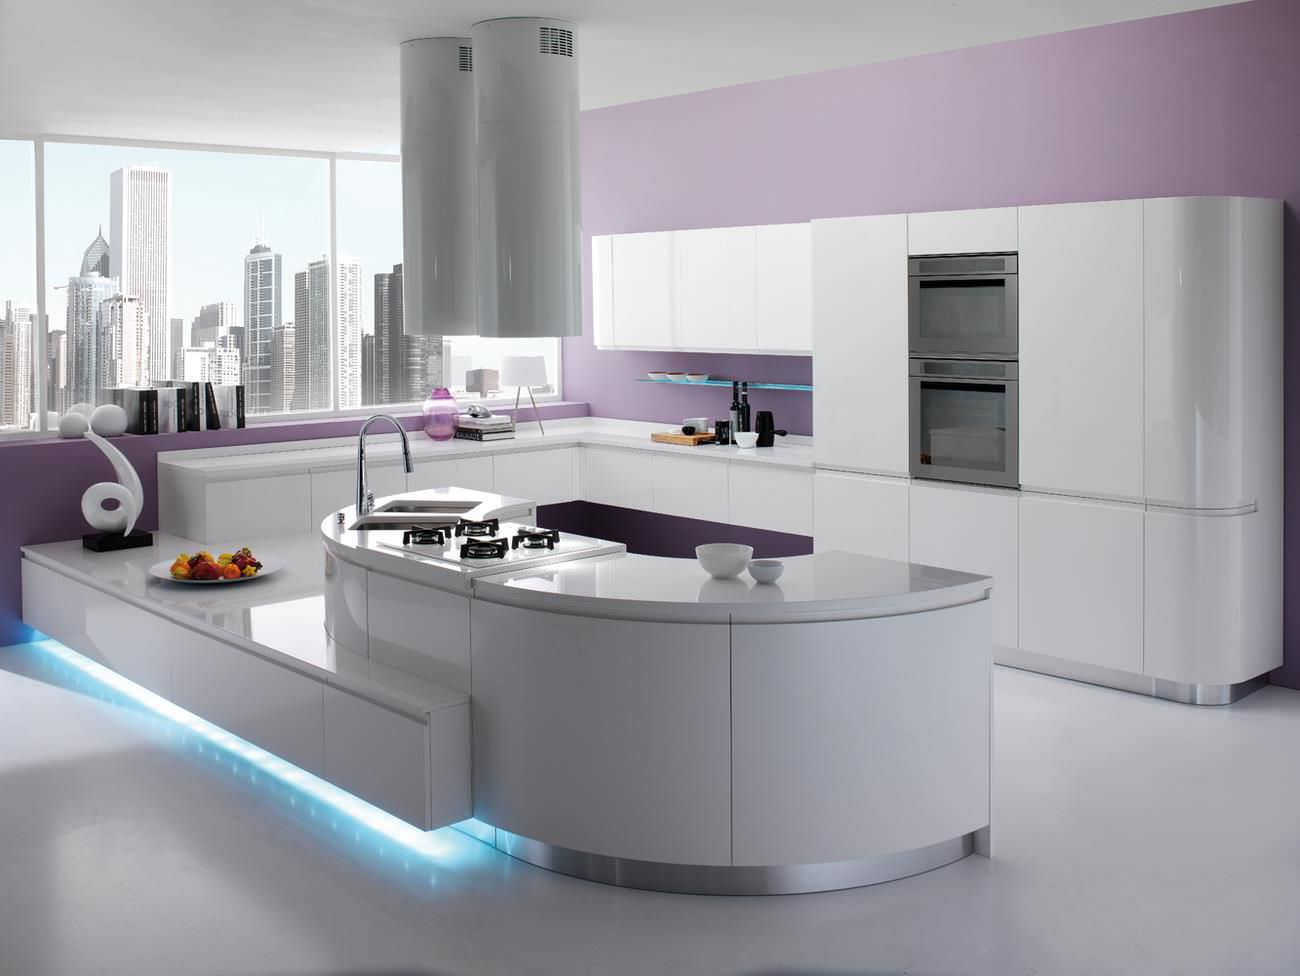 Beautiful Cucine Moderne A Isola Pictures - Home Design Ideas 2017 ...